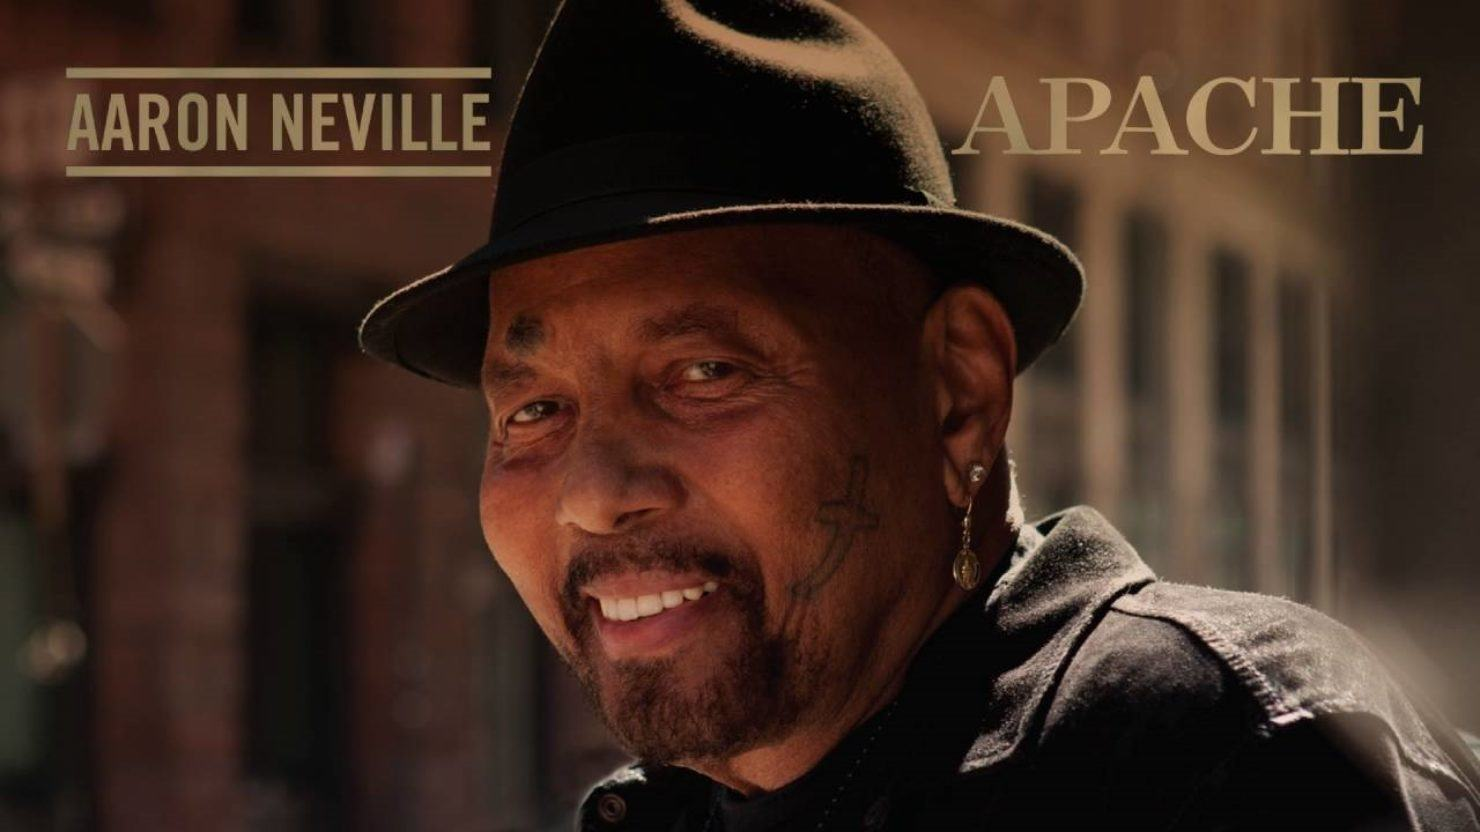 Aaron Neville - Upcoming Shows, Tickets, Reviews, More